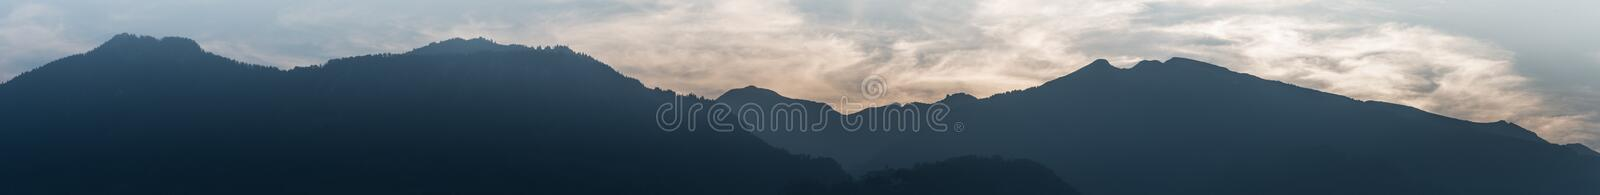 Panorama mountain landscape in silhouette with wispy cloudy sky in the blue hour stock photography